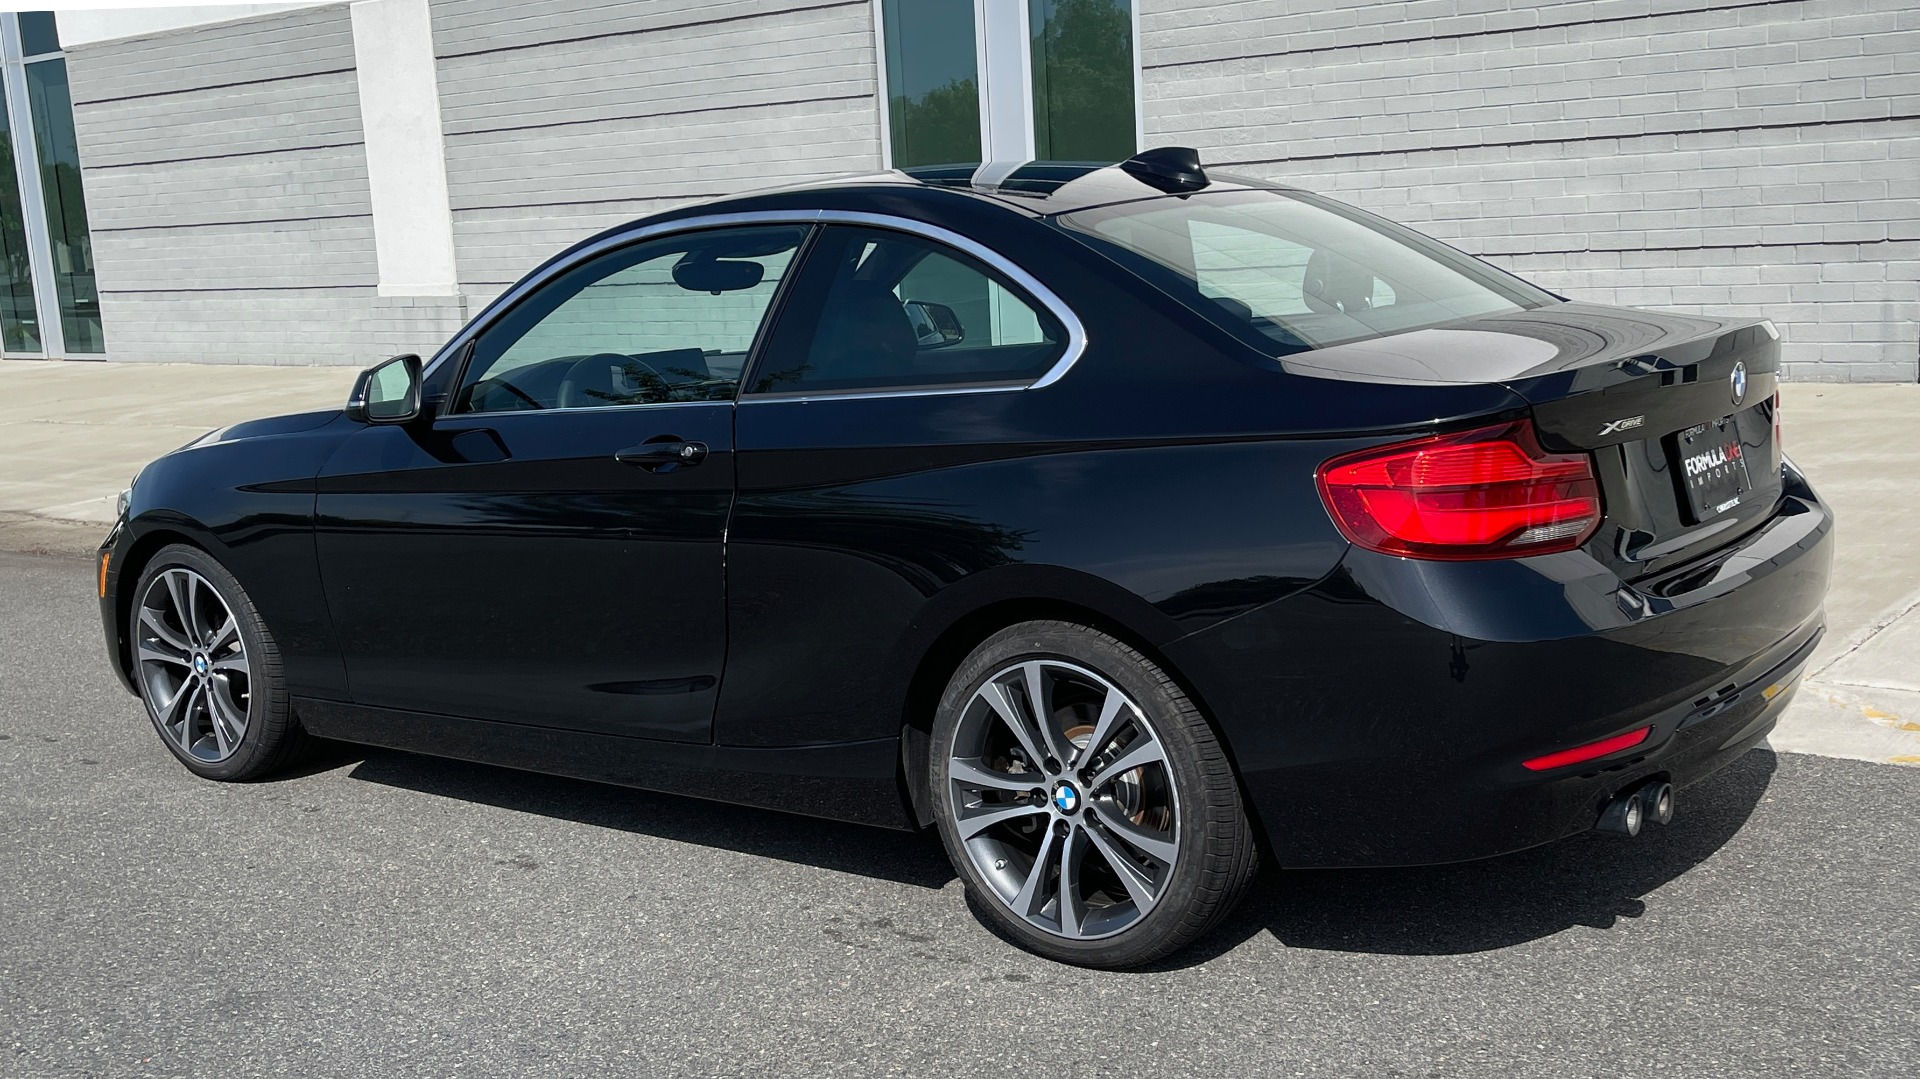 Used 2018 BMW 2 SERIES 230I XDRIVE PREMIUM / CONV PKG / NAV / SUNROOF / REARVIEW for sale $30,795 at Formula Imports in Charlotte NC 28227 5